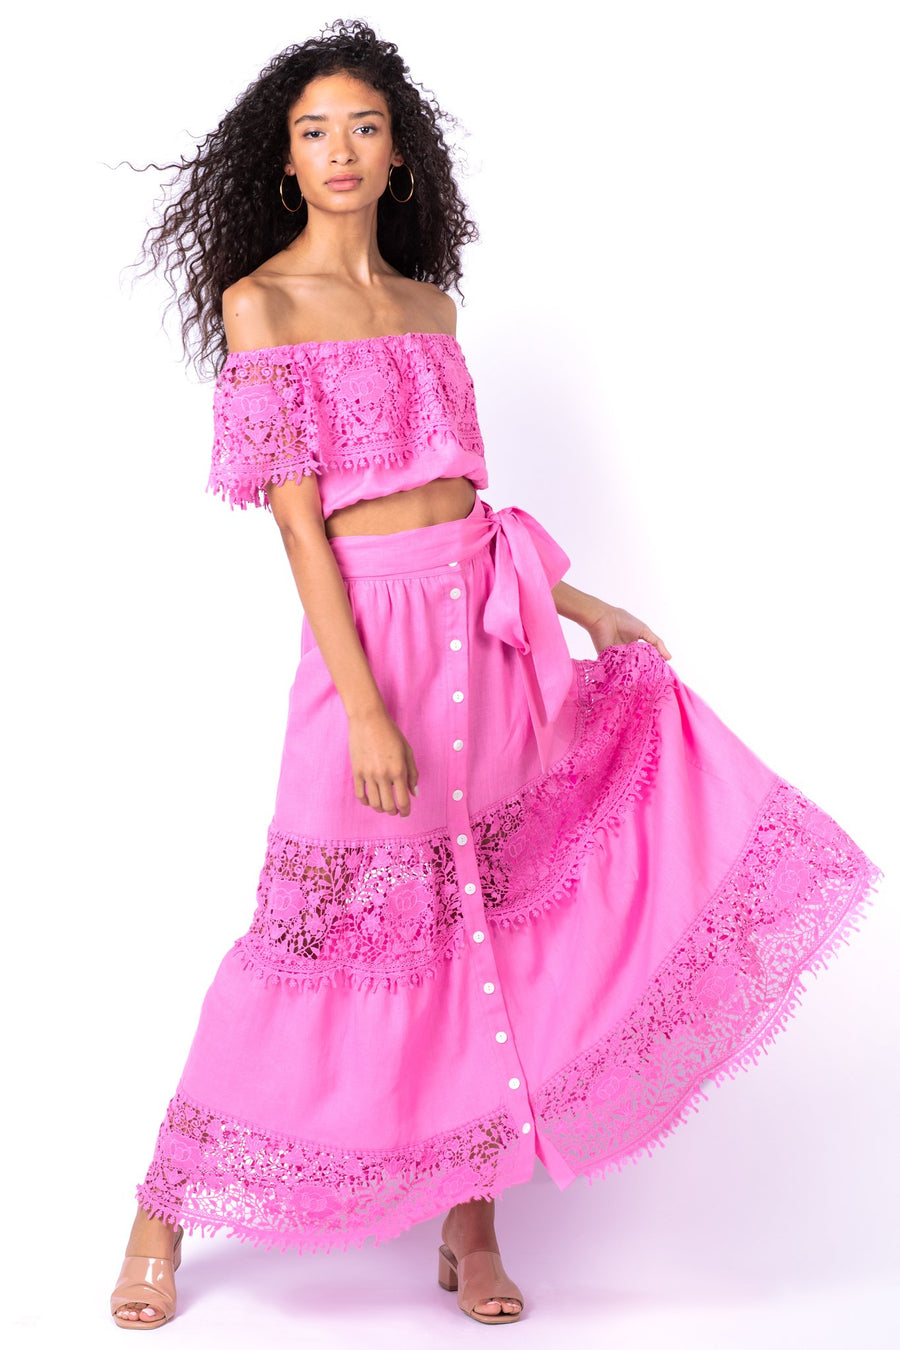 This is a photo of a woman wearing a pink, off the shoulder, linen top with a matching pink lace trim around the shoulders. It is paired with a matching pink, button front, linen and lace tiered skirt.